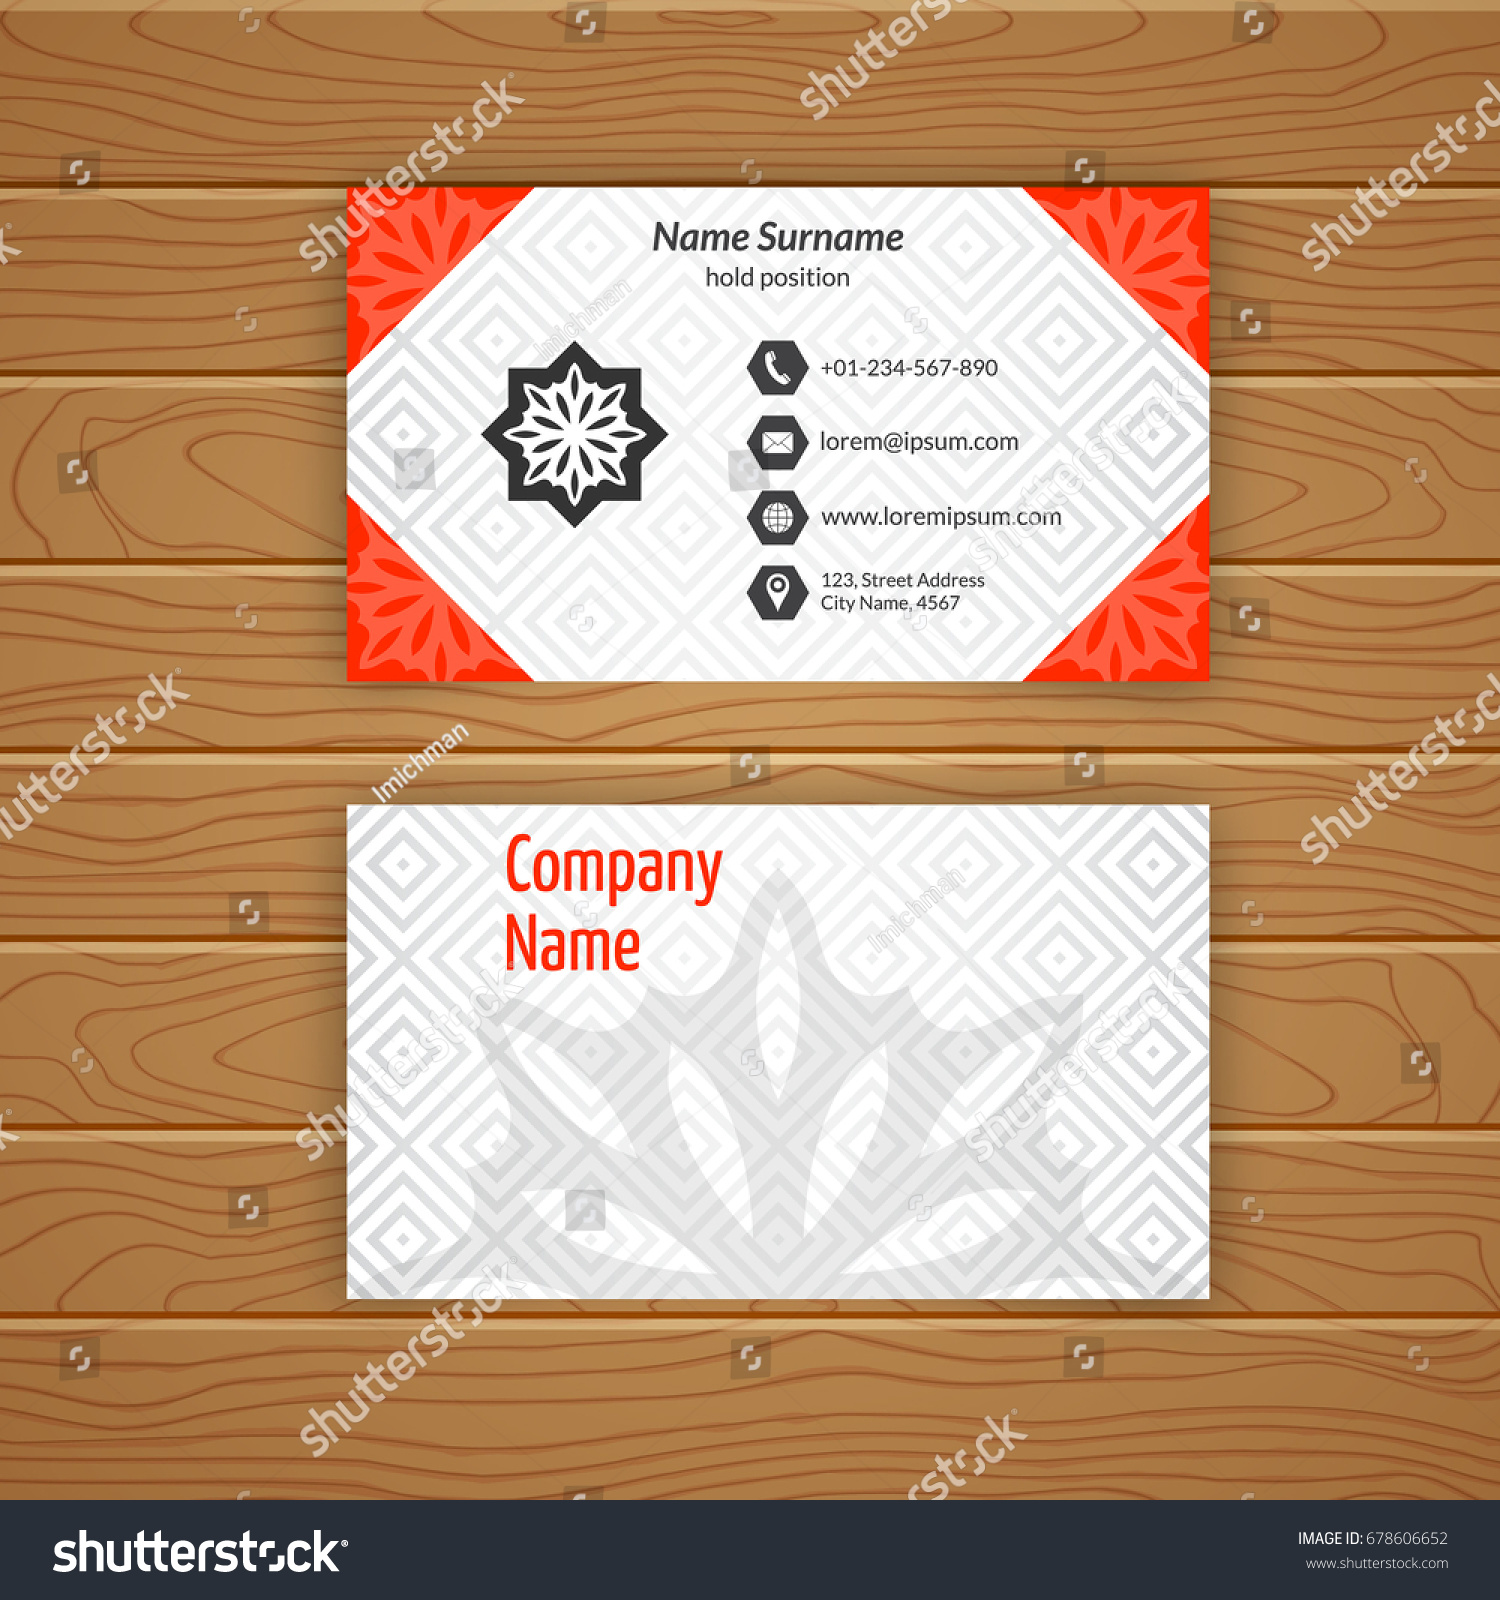 Business card blank template textured background stock vector business card blank template with textured background from diamond tiles minimal elegant vector design flashek Gallery